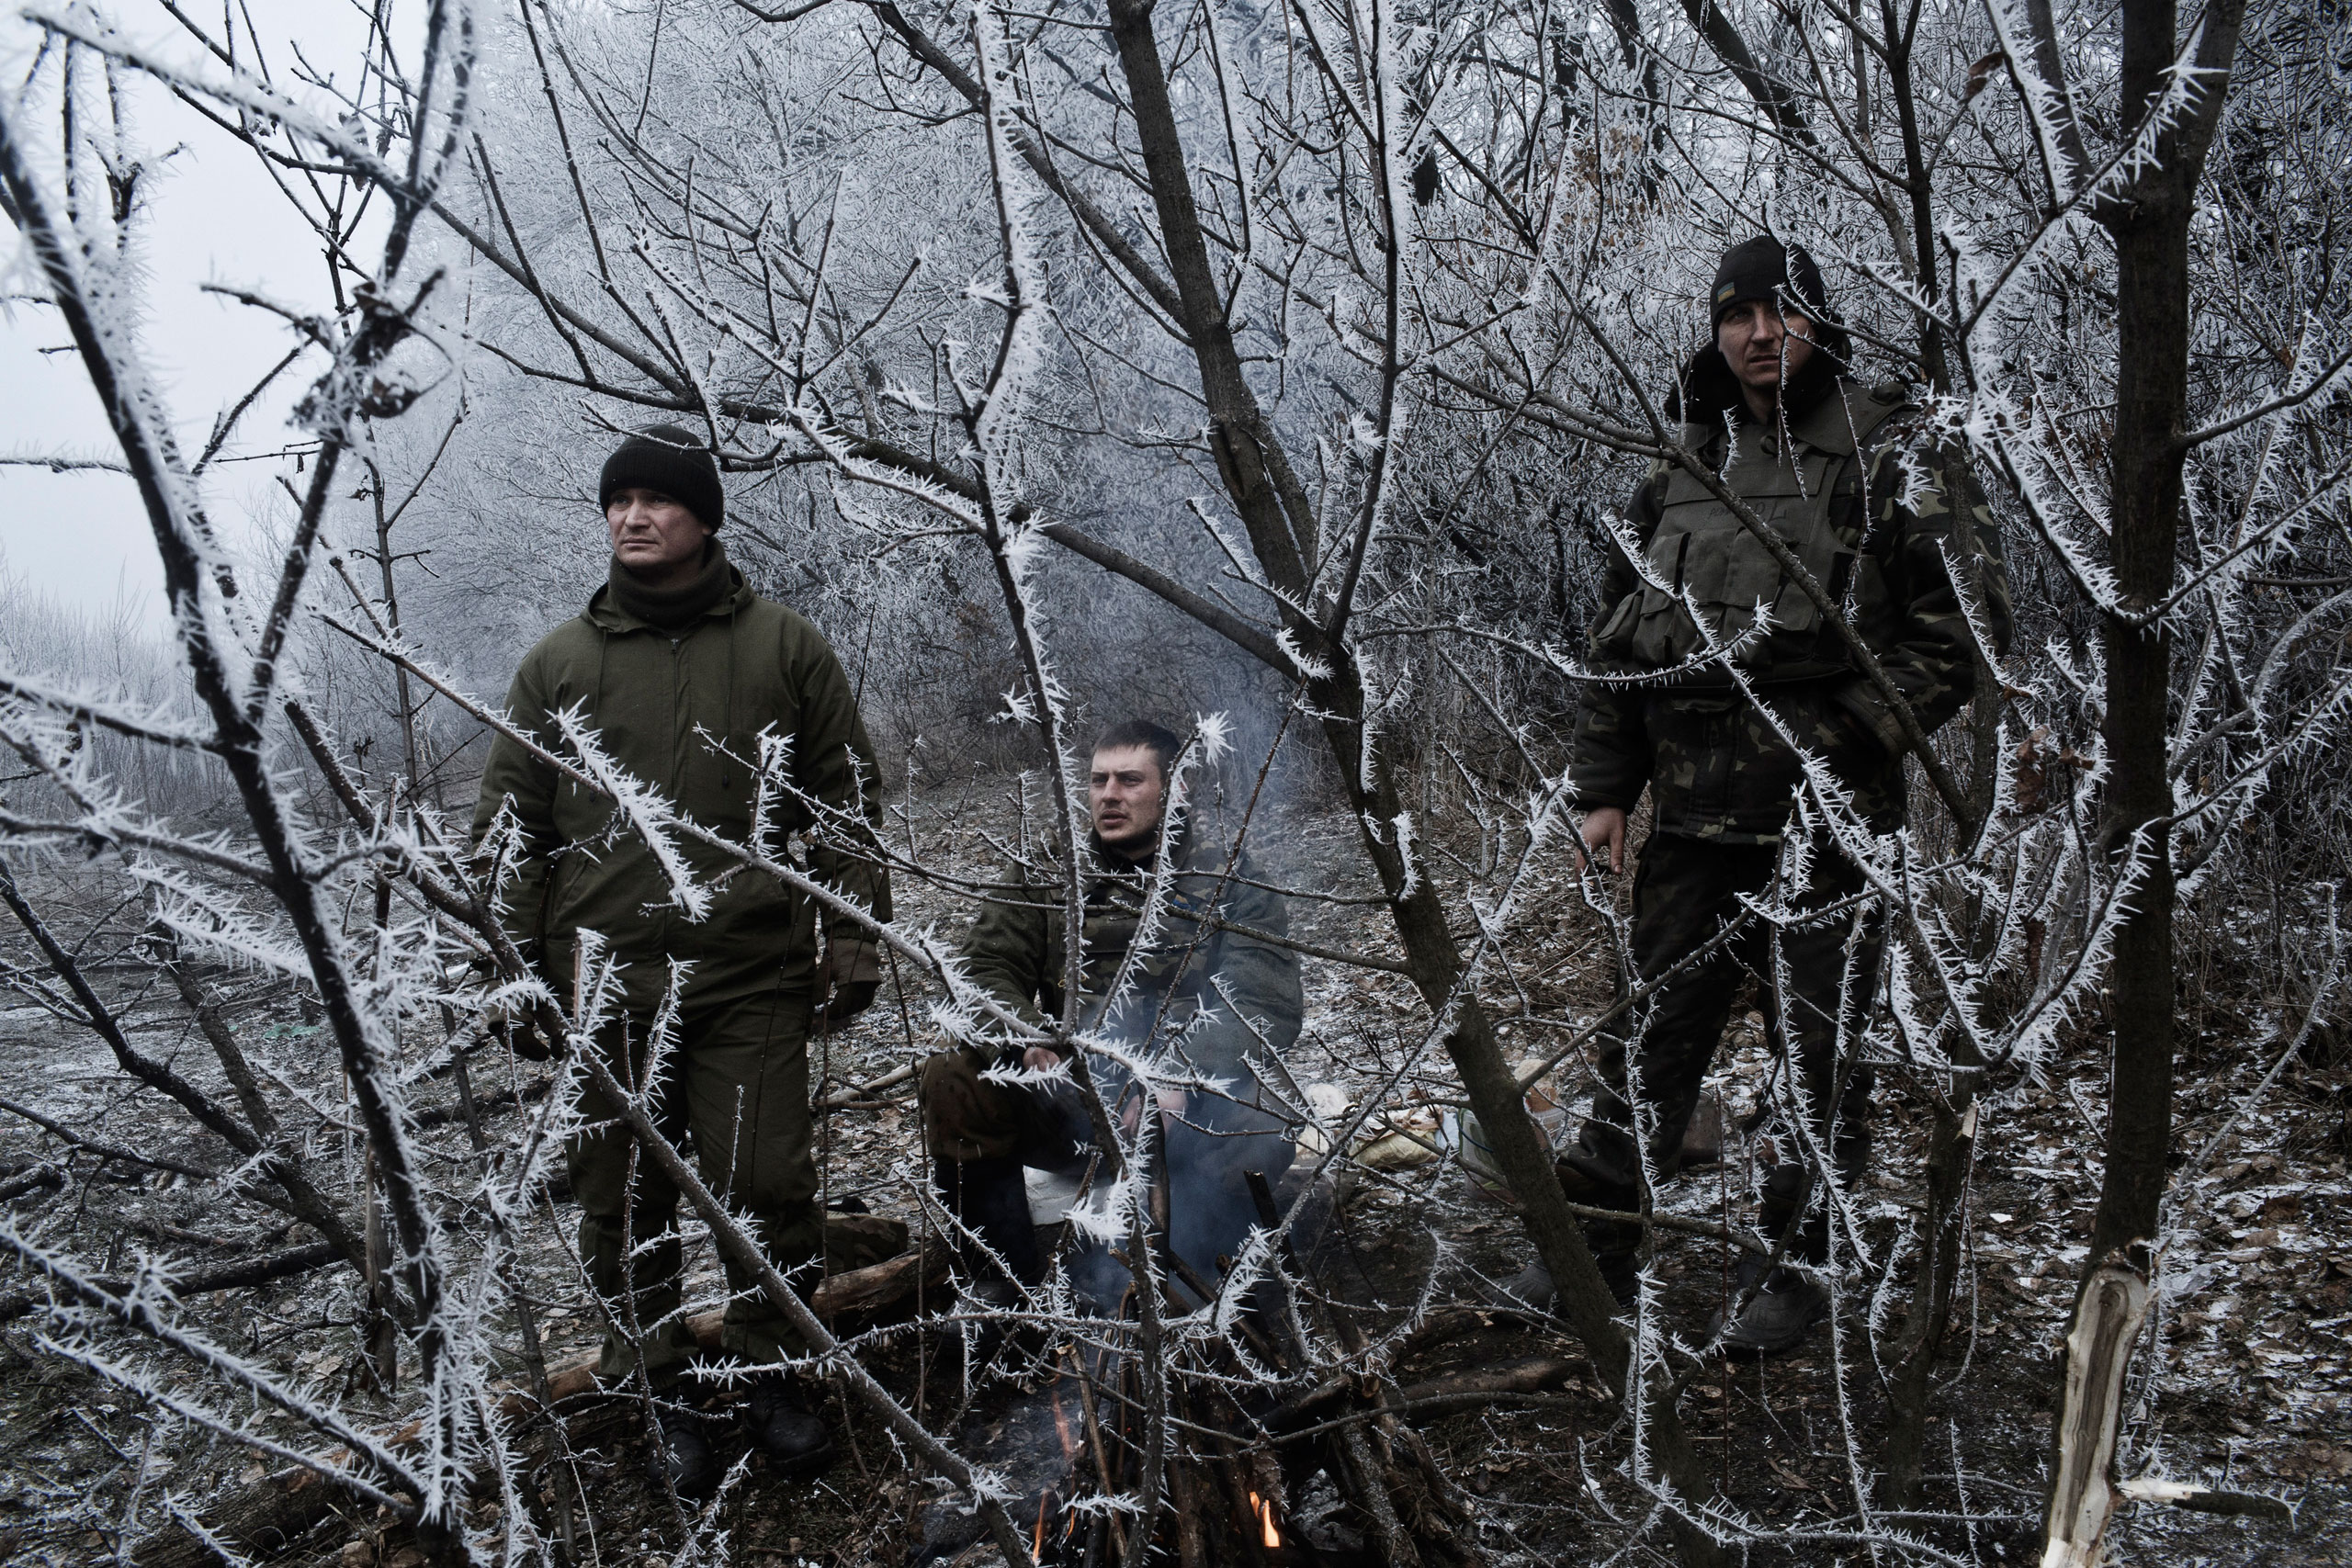 Ukrainian soldiers conduct operations along the road leading to the embattled town of Debaltseve in Artemivsk, Ukraine. A ceasefire began at midnight between Pro-Russian Separatists and the Ukrainian forces brokered by the EU, Russia and Ukraine. Debaltseve has become the focal point with reportedly 8000 Ukrainian forces trapped in a bottleneck inside the city. Feb. 15, 2015.